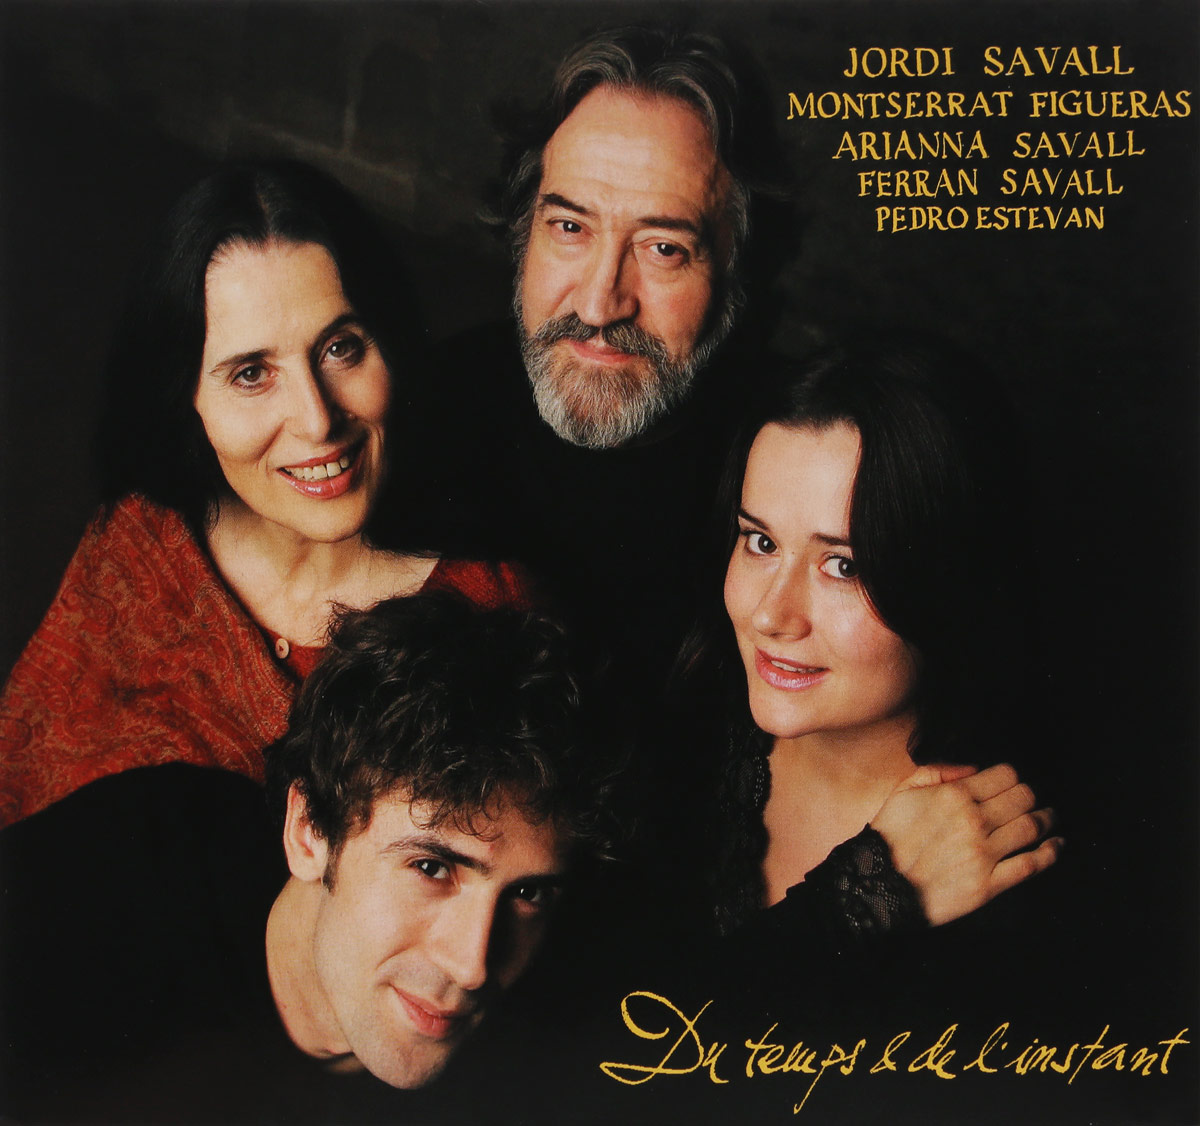 MONTSERRAT FIGUERAS, JORDI SAVALL, ARIANNA SAVALL, FERRAN SAVALL, PEDRO ESTEVAN. DU TEMPS & DE L'INSTANT (OF TIME AND NOW): WORKS BY ANONYMOUS, MARTIN CODAX, ORTIZ, MARAIS, MERULA ETC.. 1